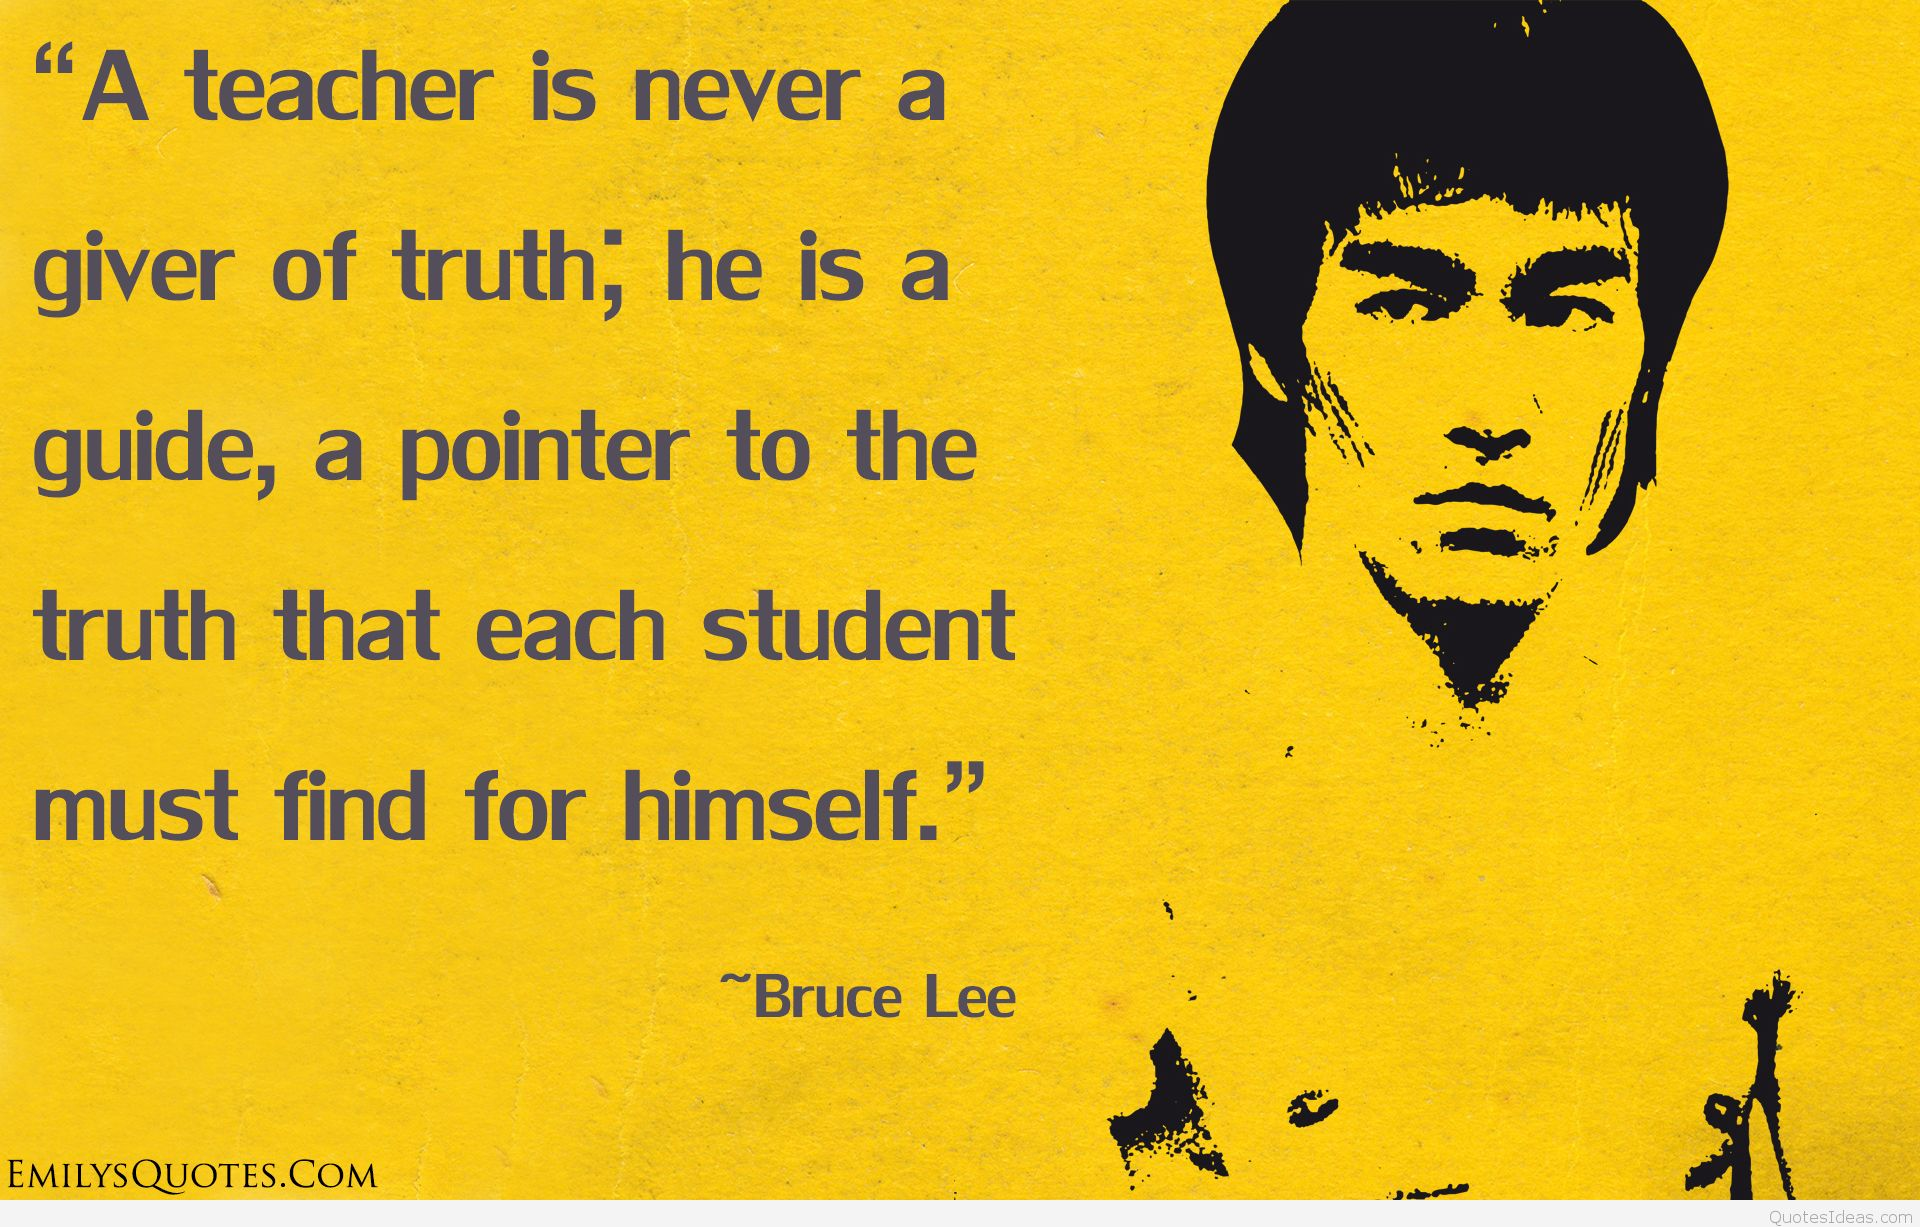 bruce lee happy birthday card ; Famous-Inspirational-Bruce-Lee-Quote